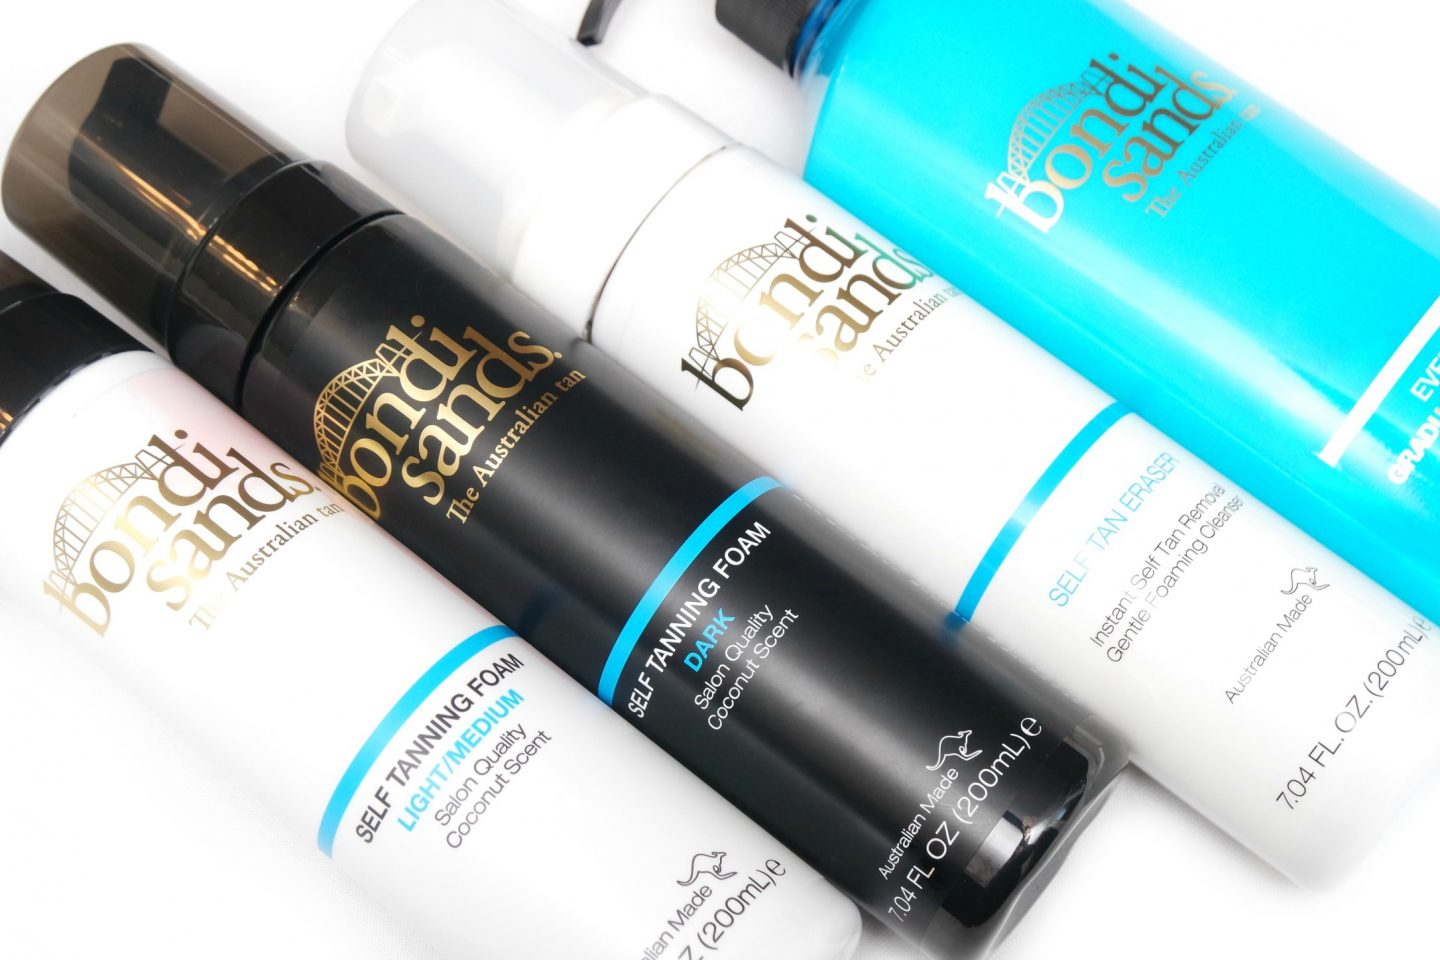 Bondi Sands Self Tanning Products